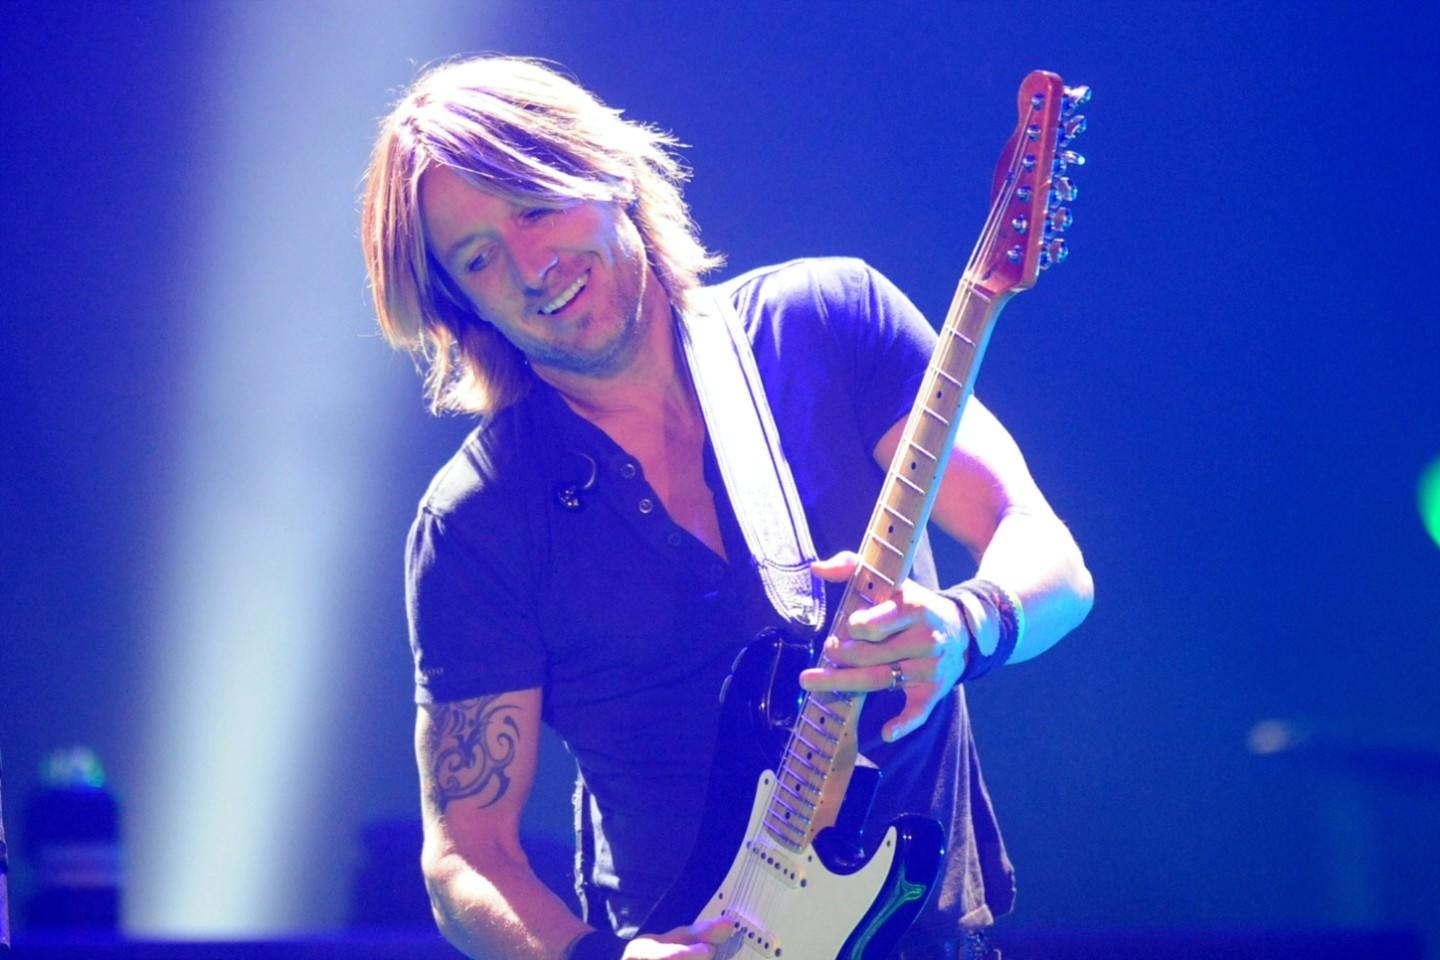 Tim Mcgraw Tour Dates 2020 Keith Urban Tickets | Keith Urban Concert Tickets and 2020 Tour